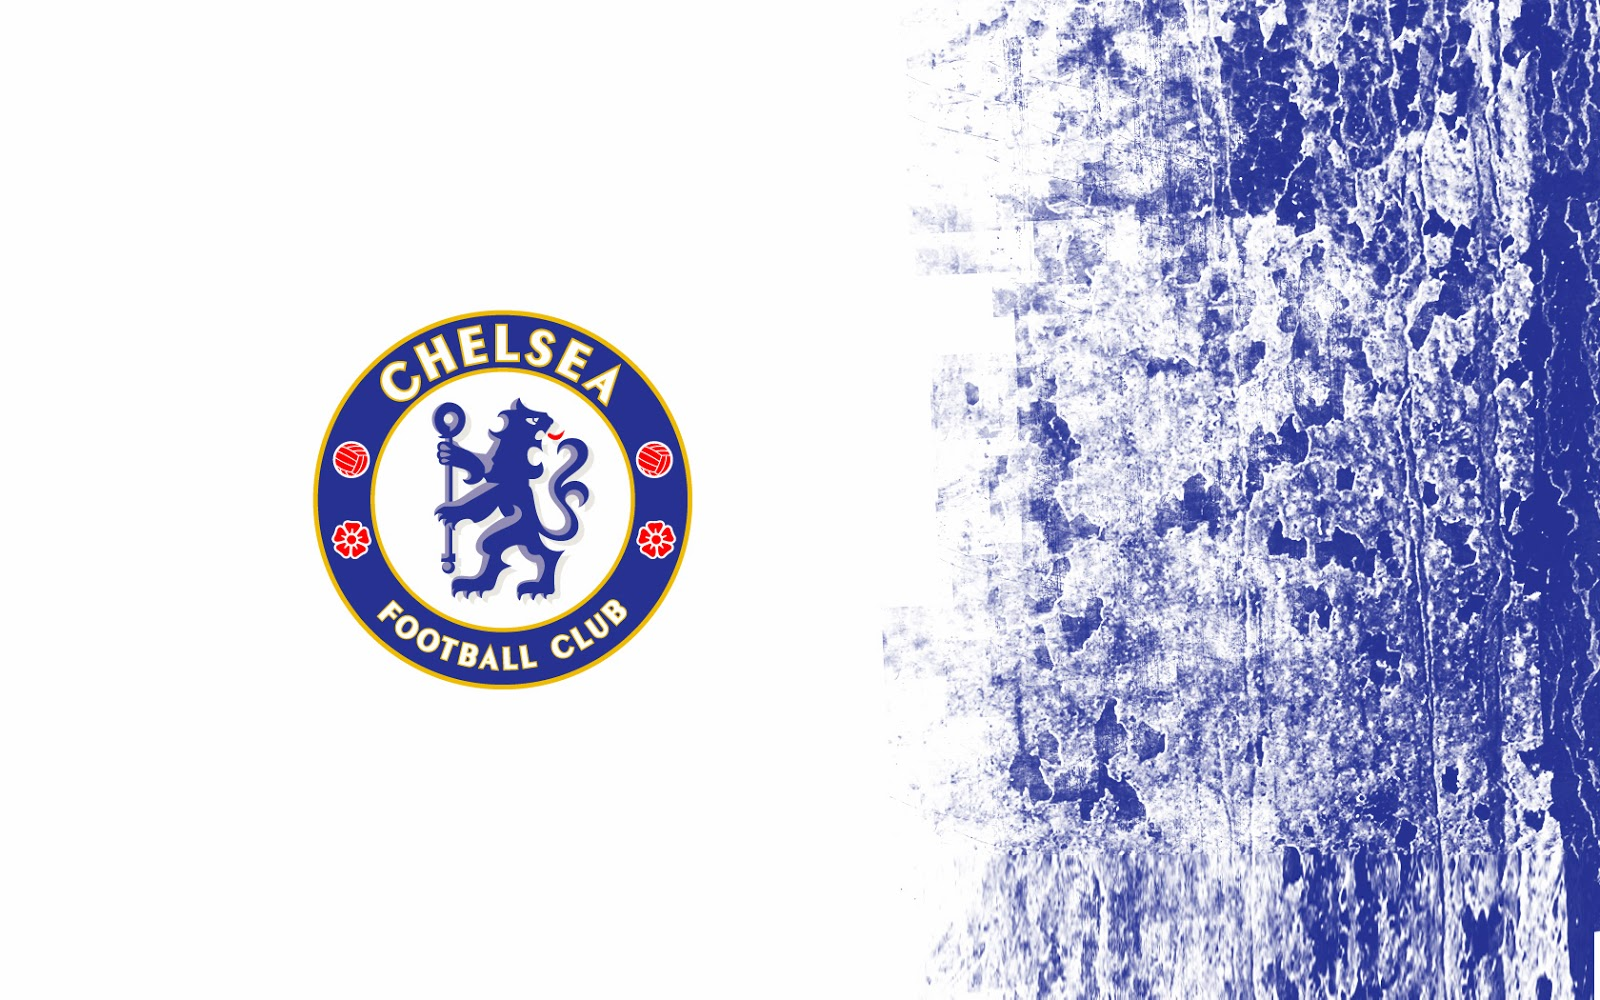 Chelsea Fc Wallpapers - beautiful desktop wallpapers 2014